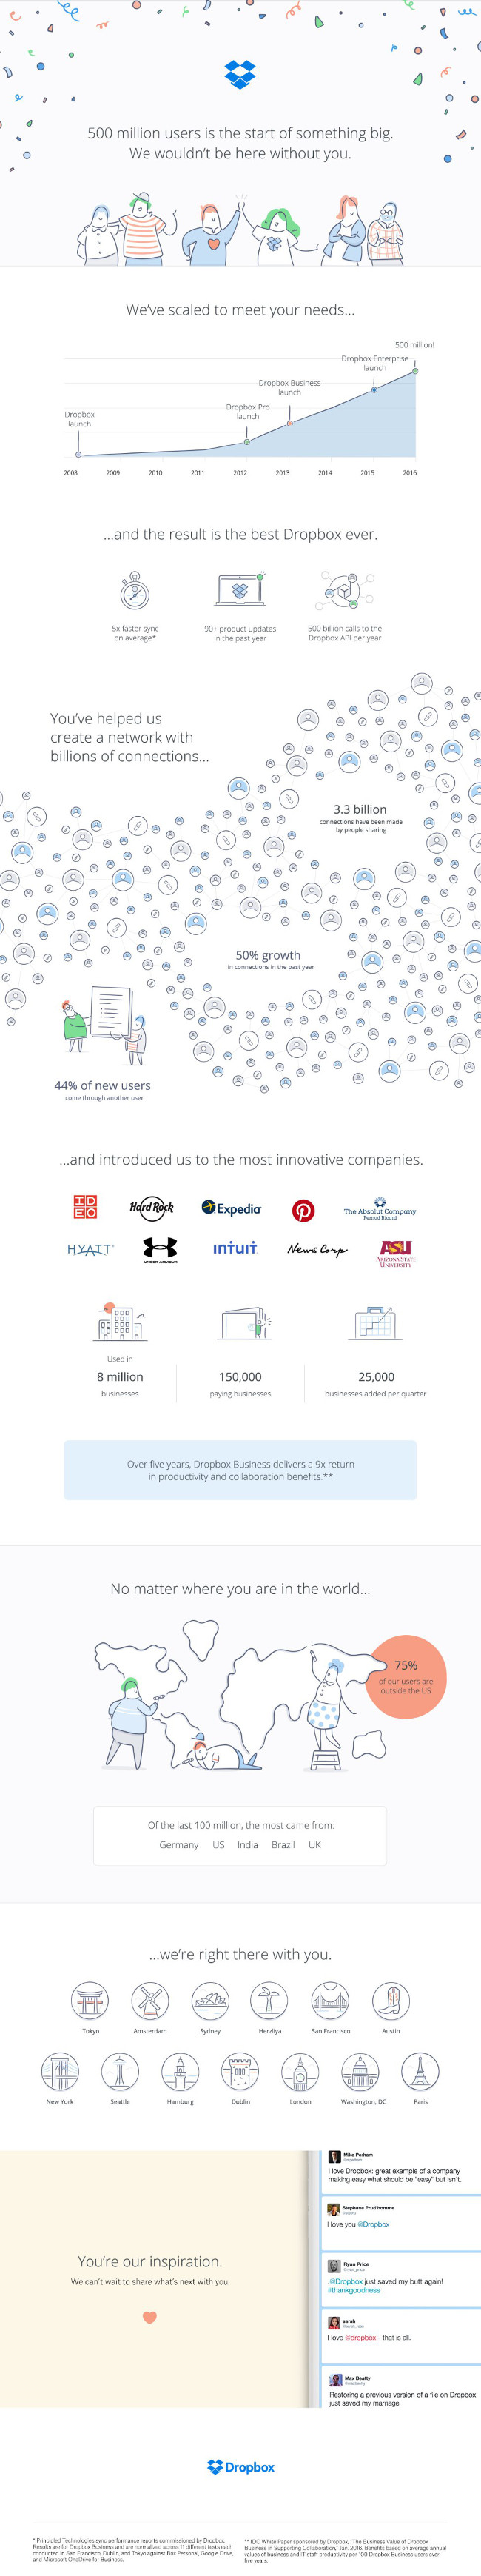 dropbox-500-million-infographic1